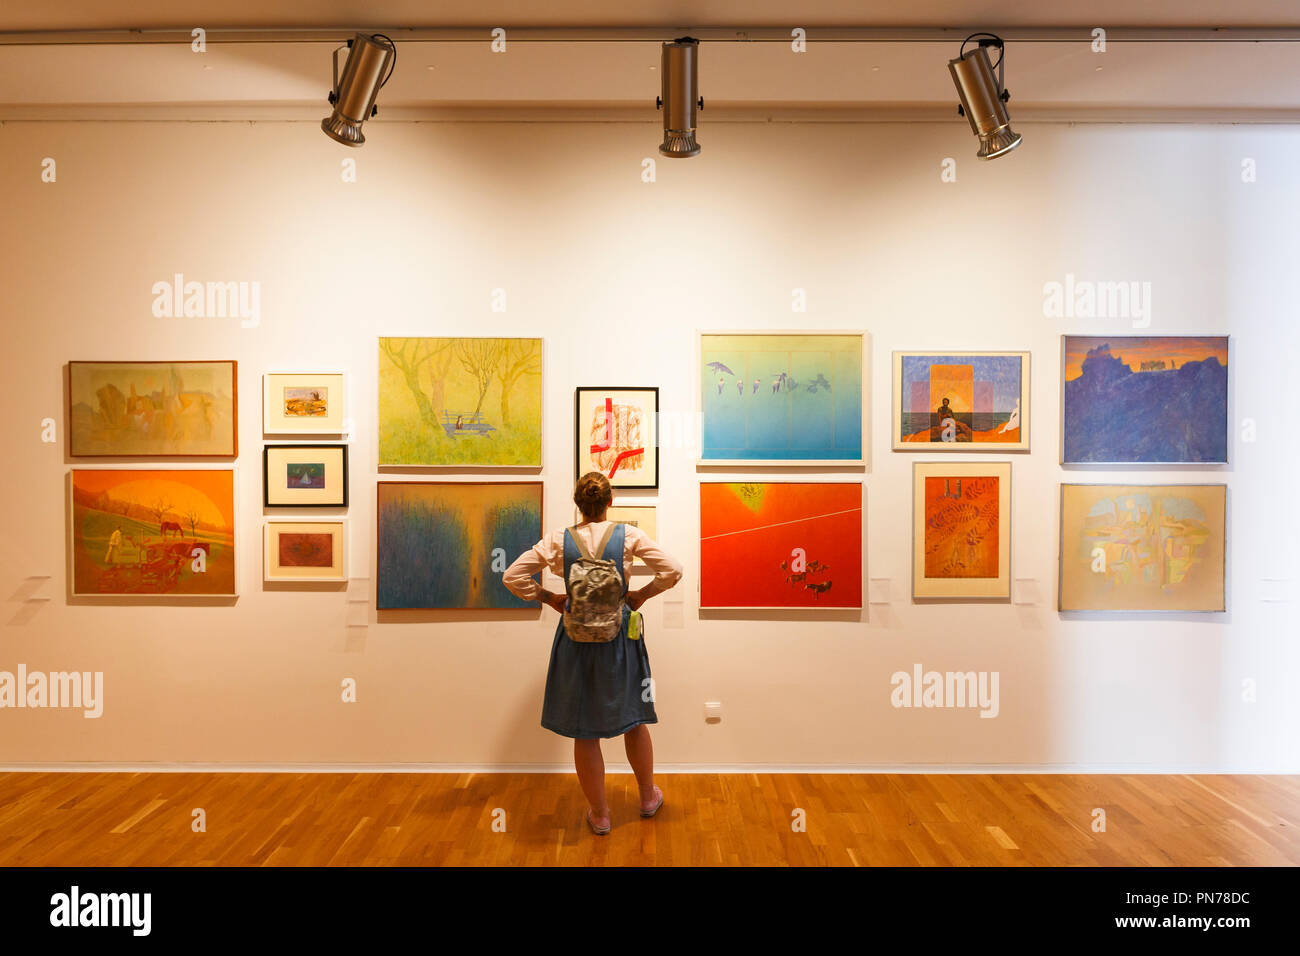 Kosice, Slovakia - August 12, 2018: Visitor to a temporary exhibition of paintings in East Slovak Gallery in Kosice. Stock Photo